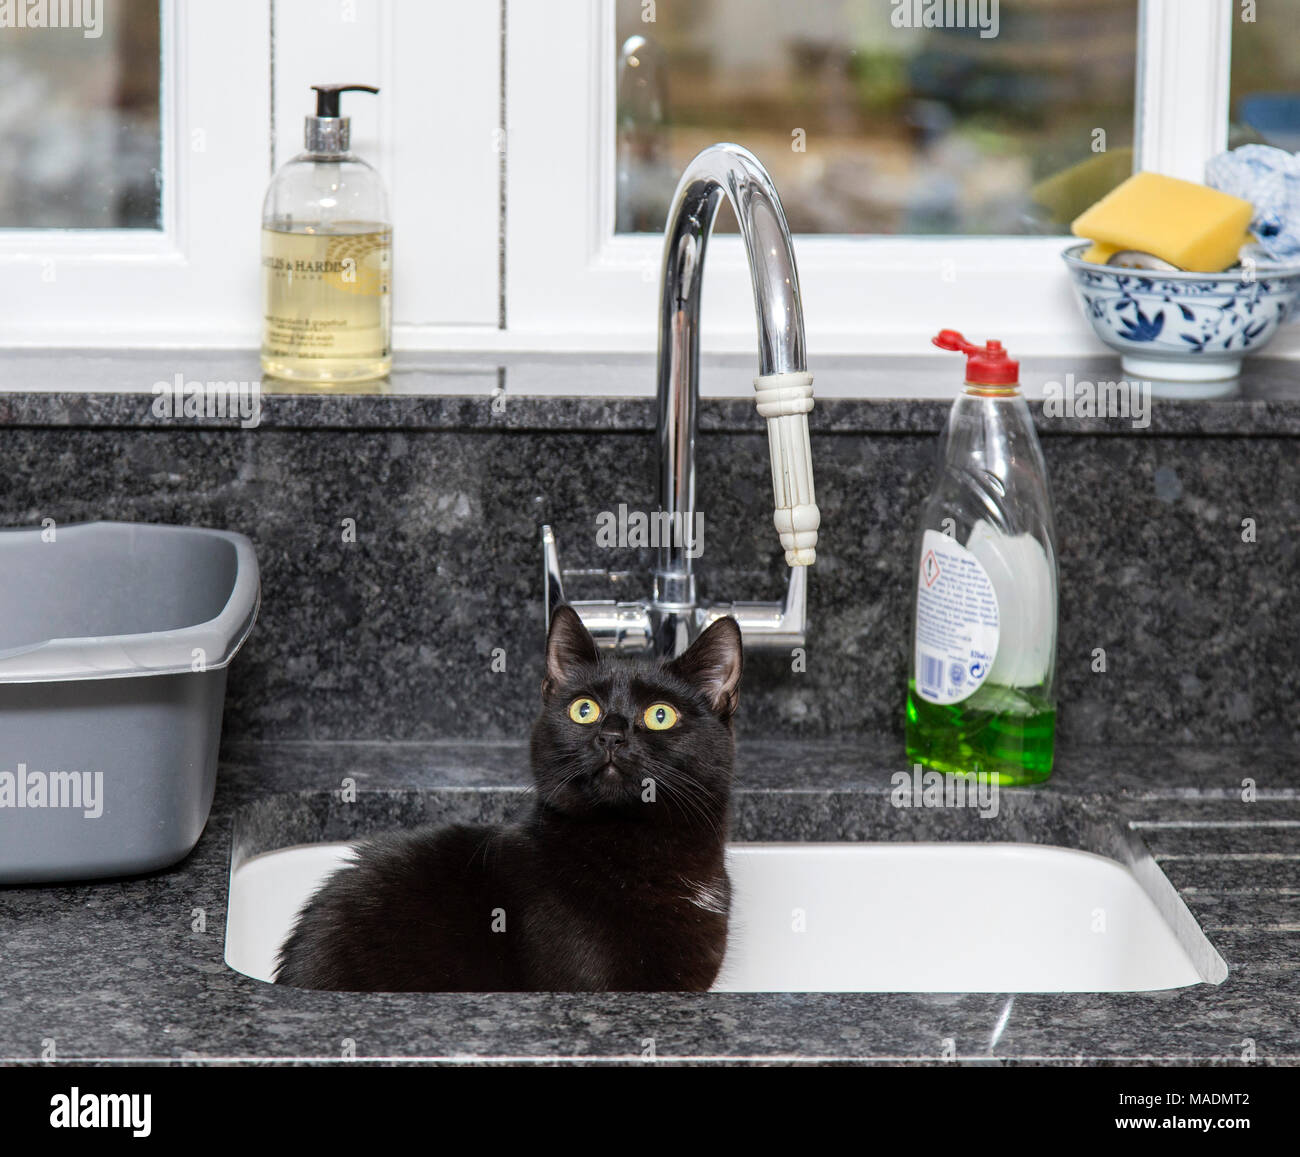 Black cat sat in a kitchen sink Stock Photo